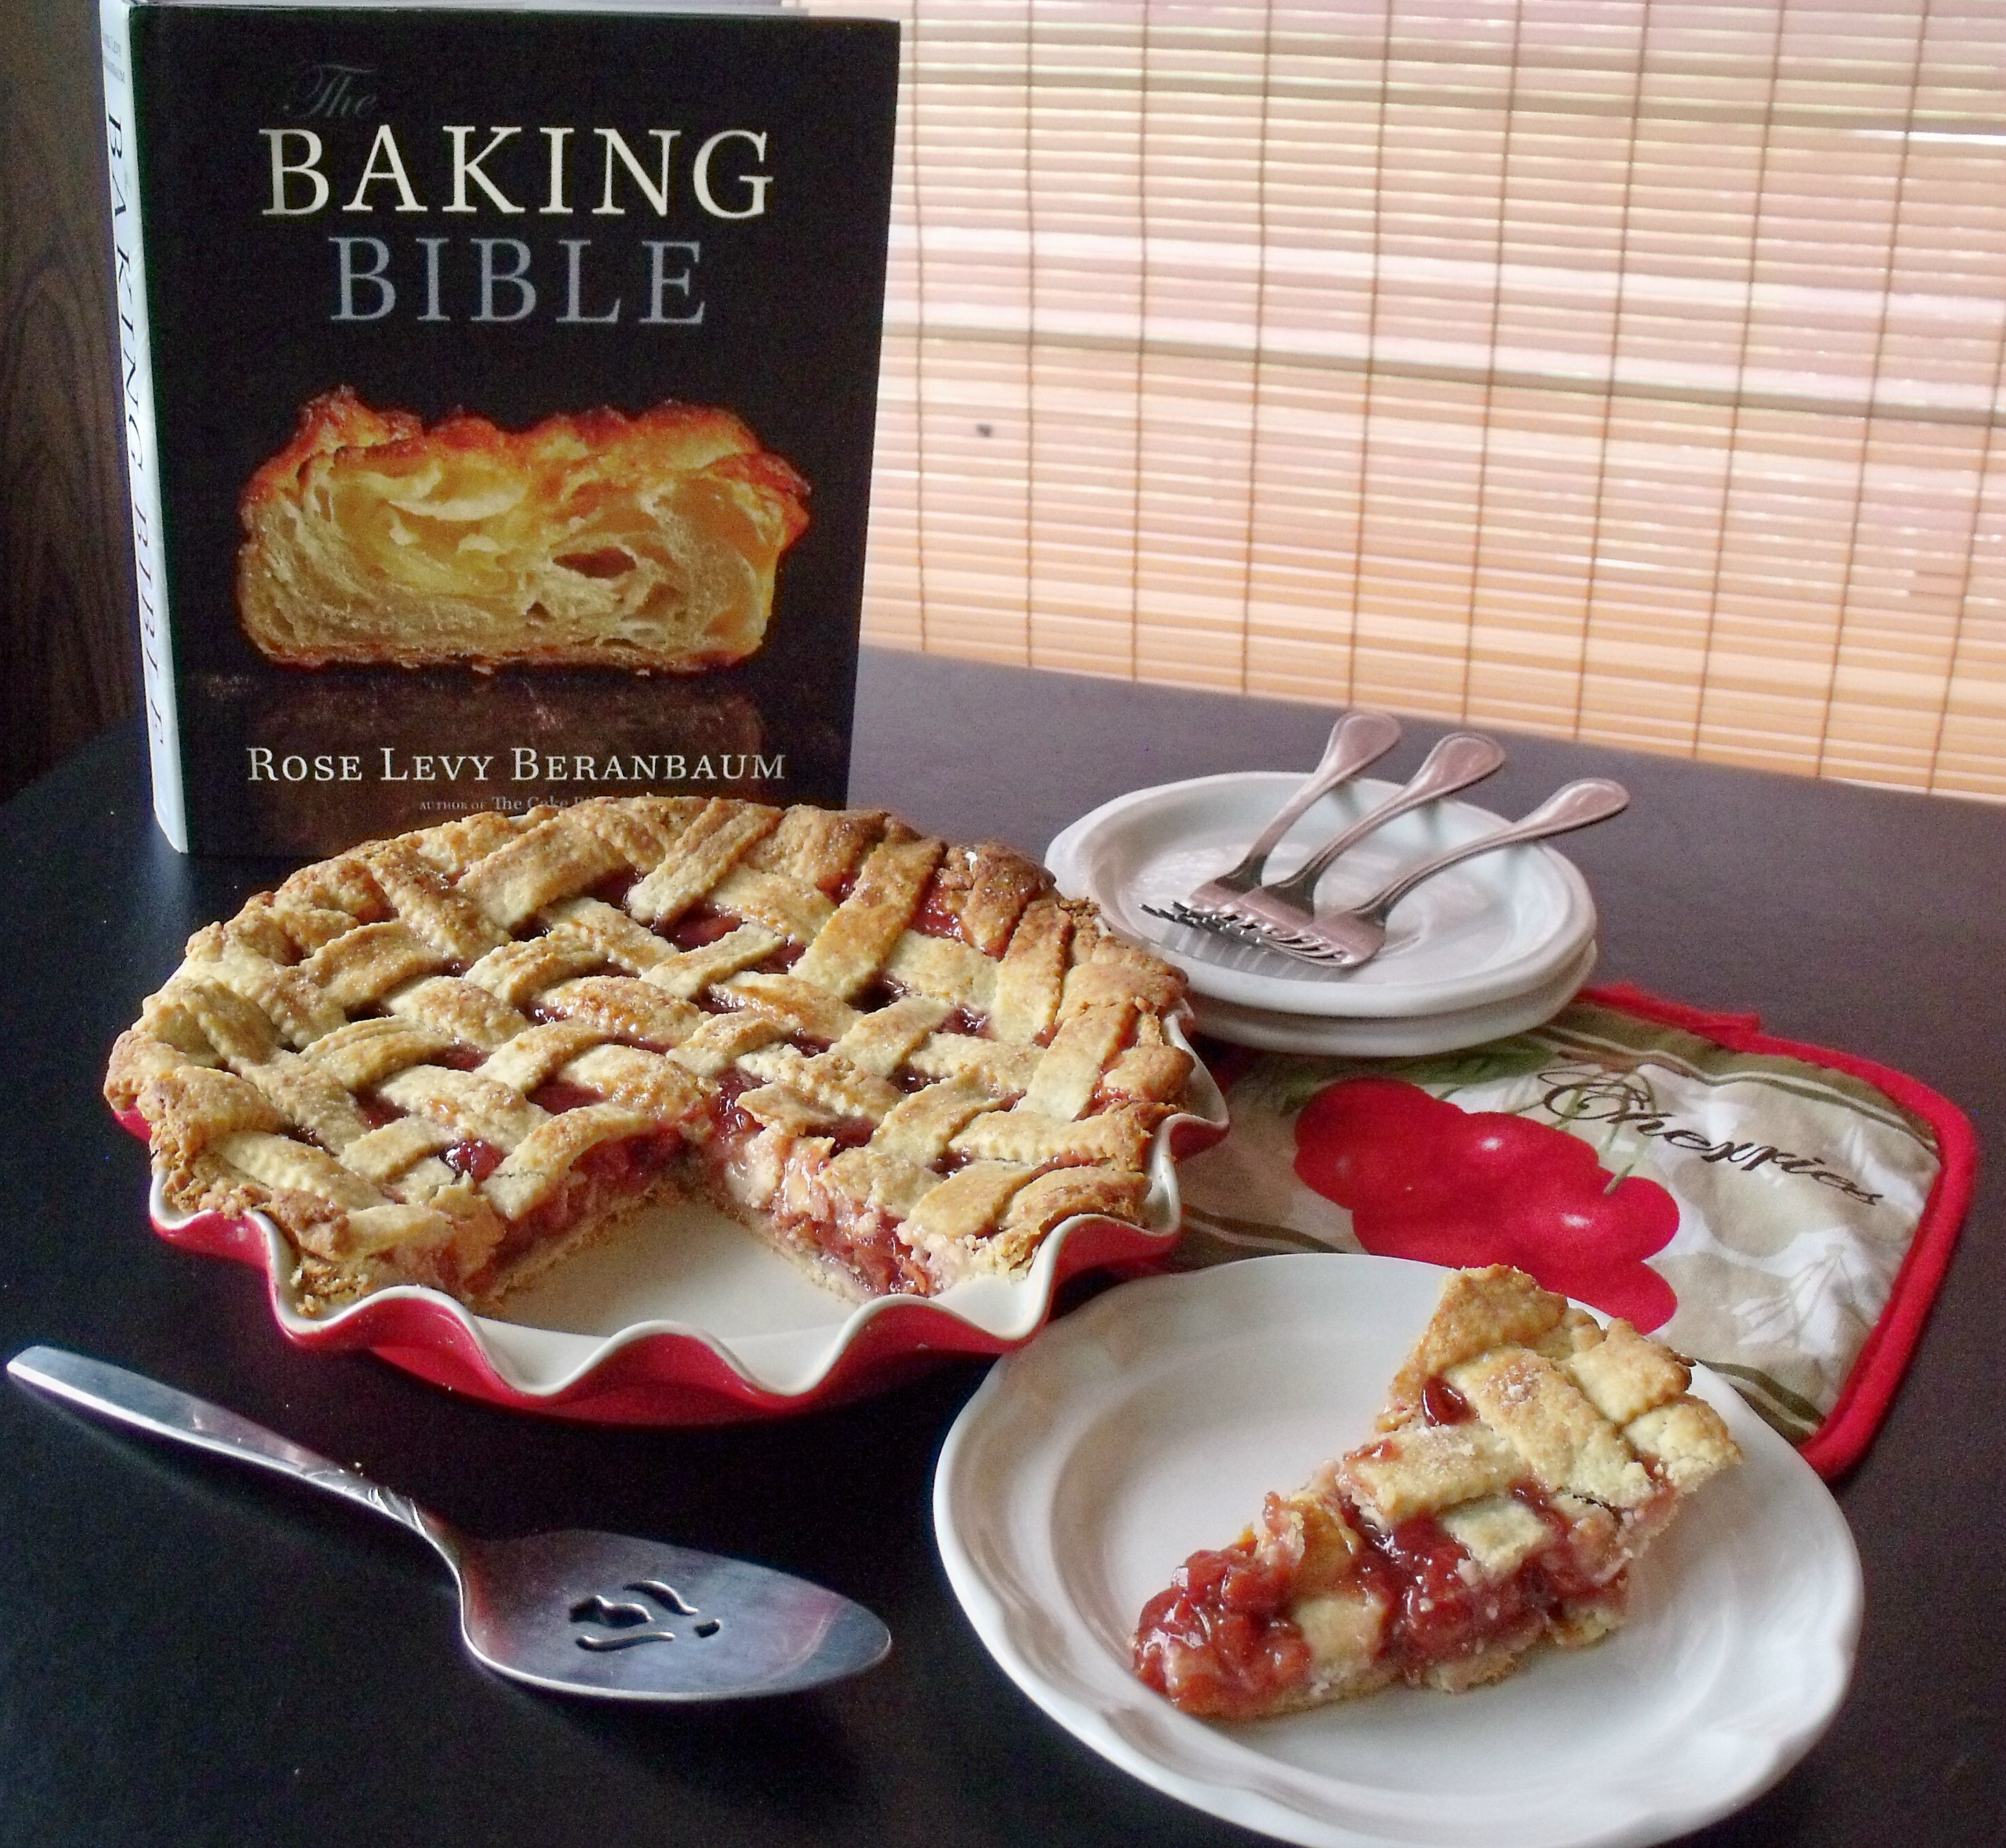 Rose Levy S Cake Bible